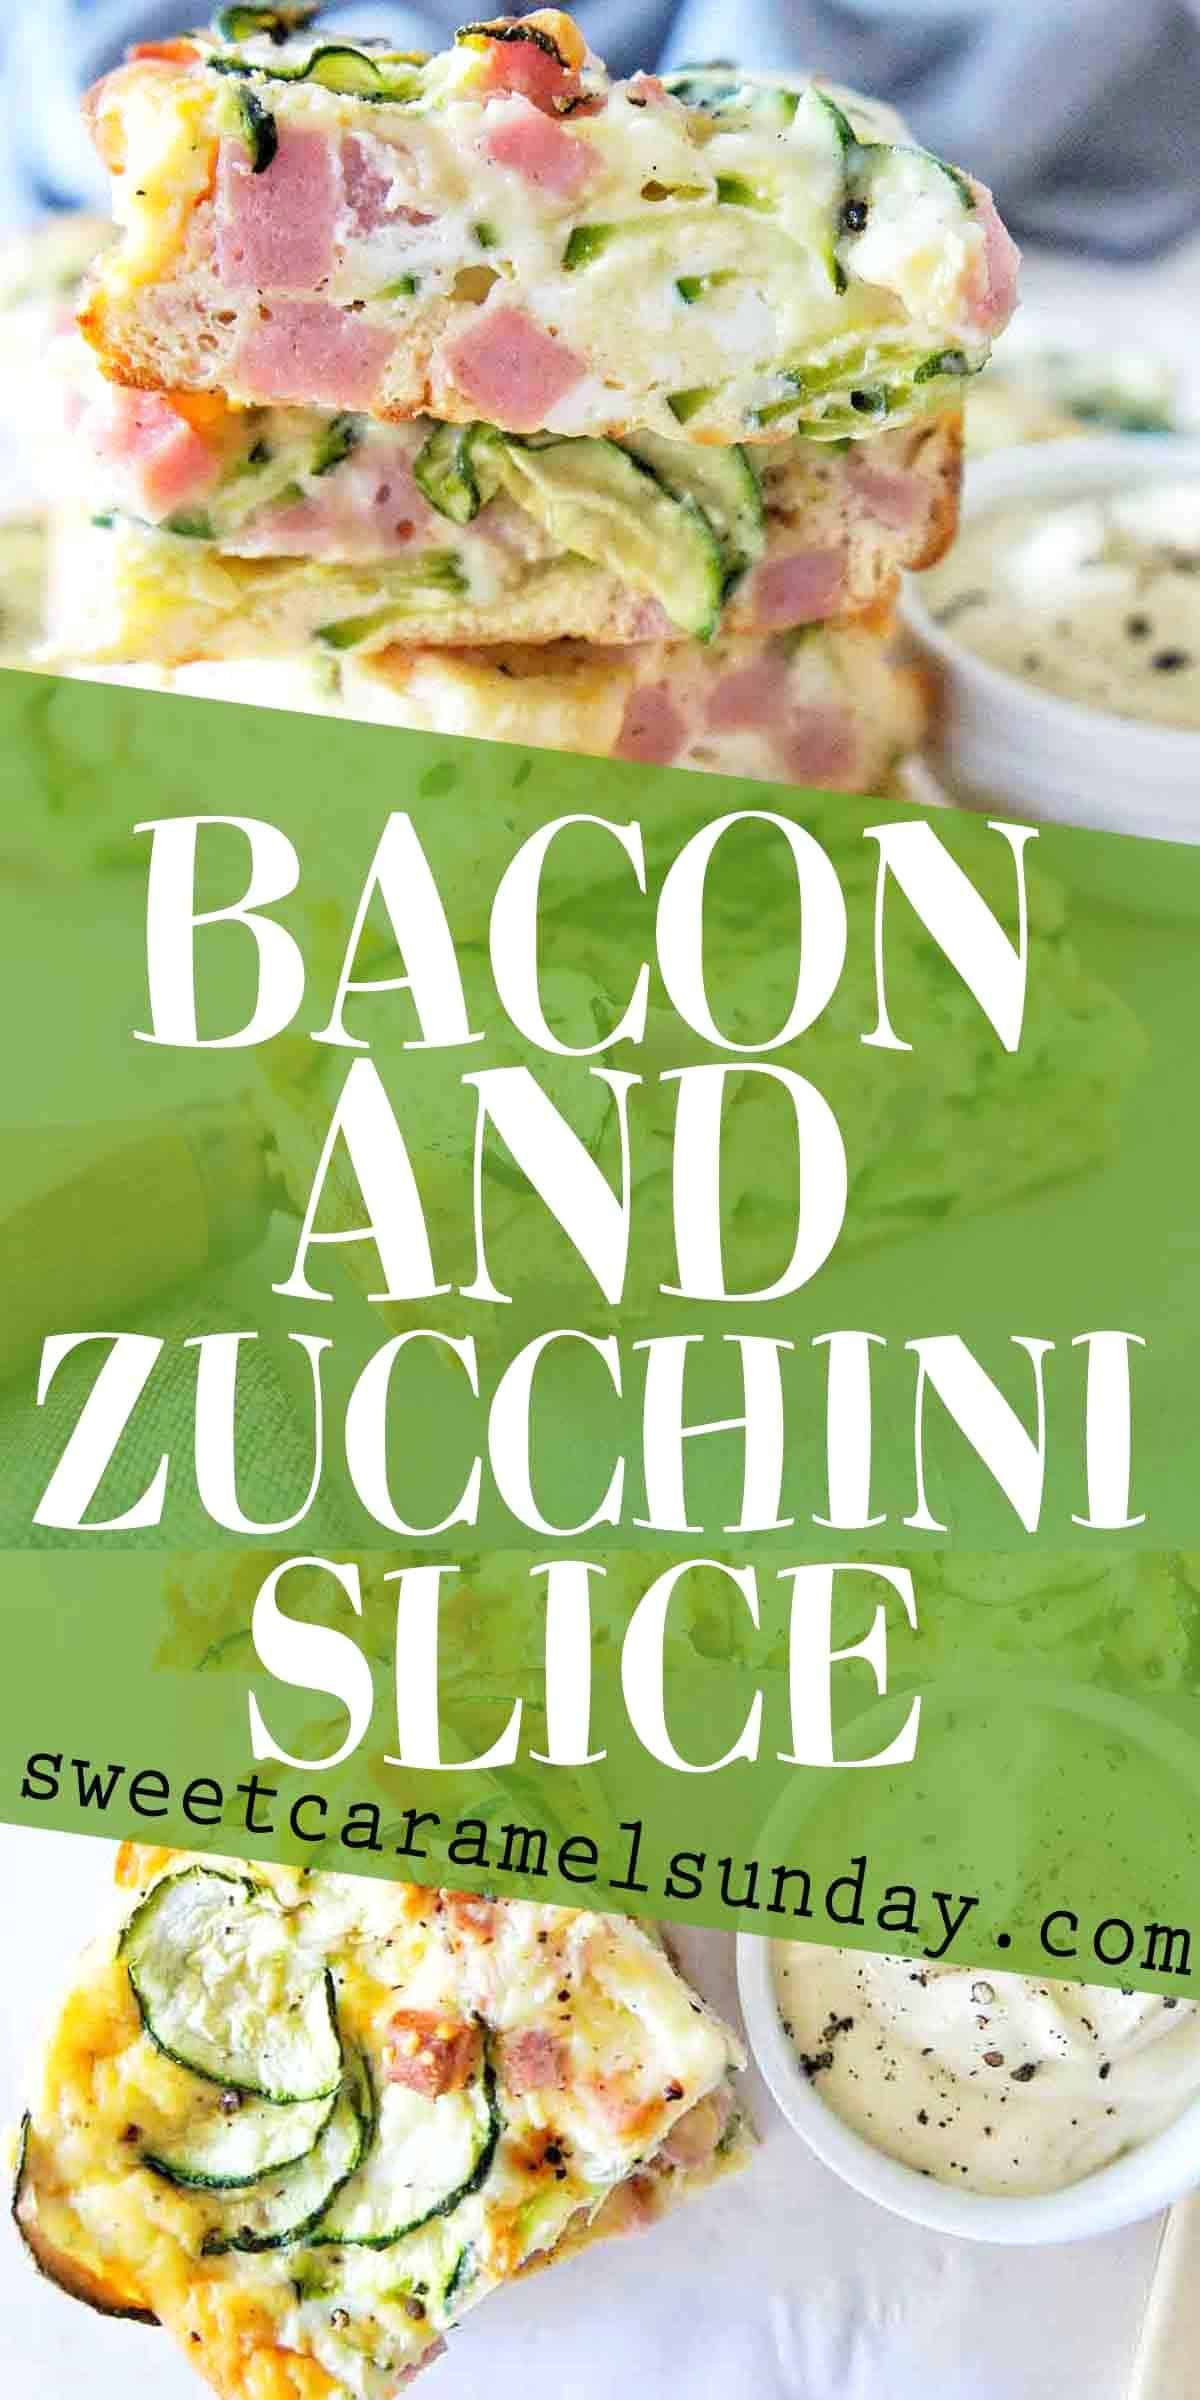 Bacon and Zucchini Slice with text overlay